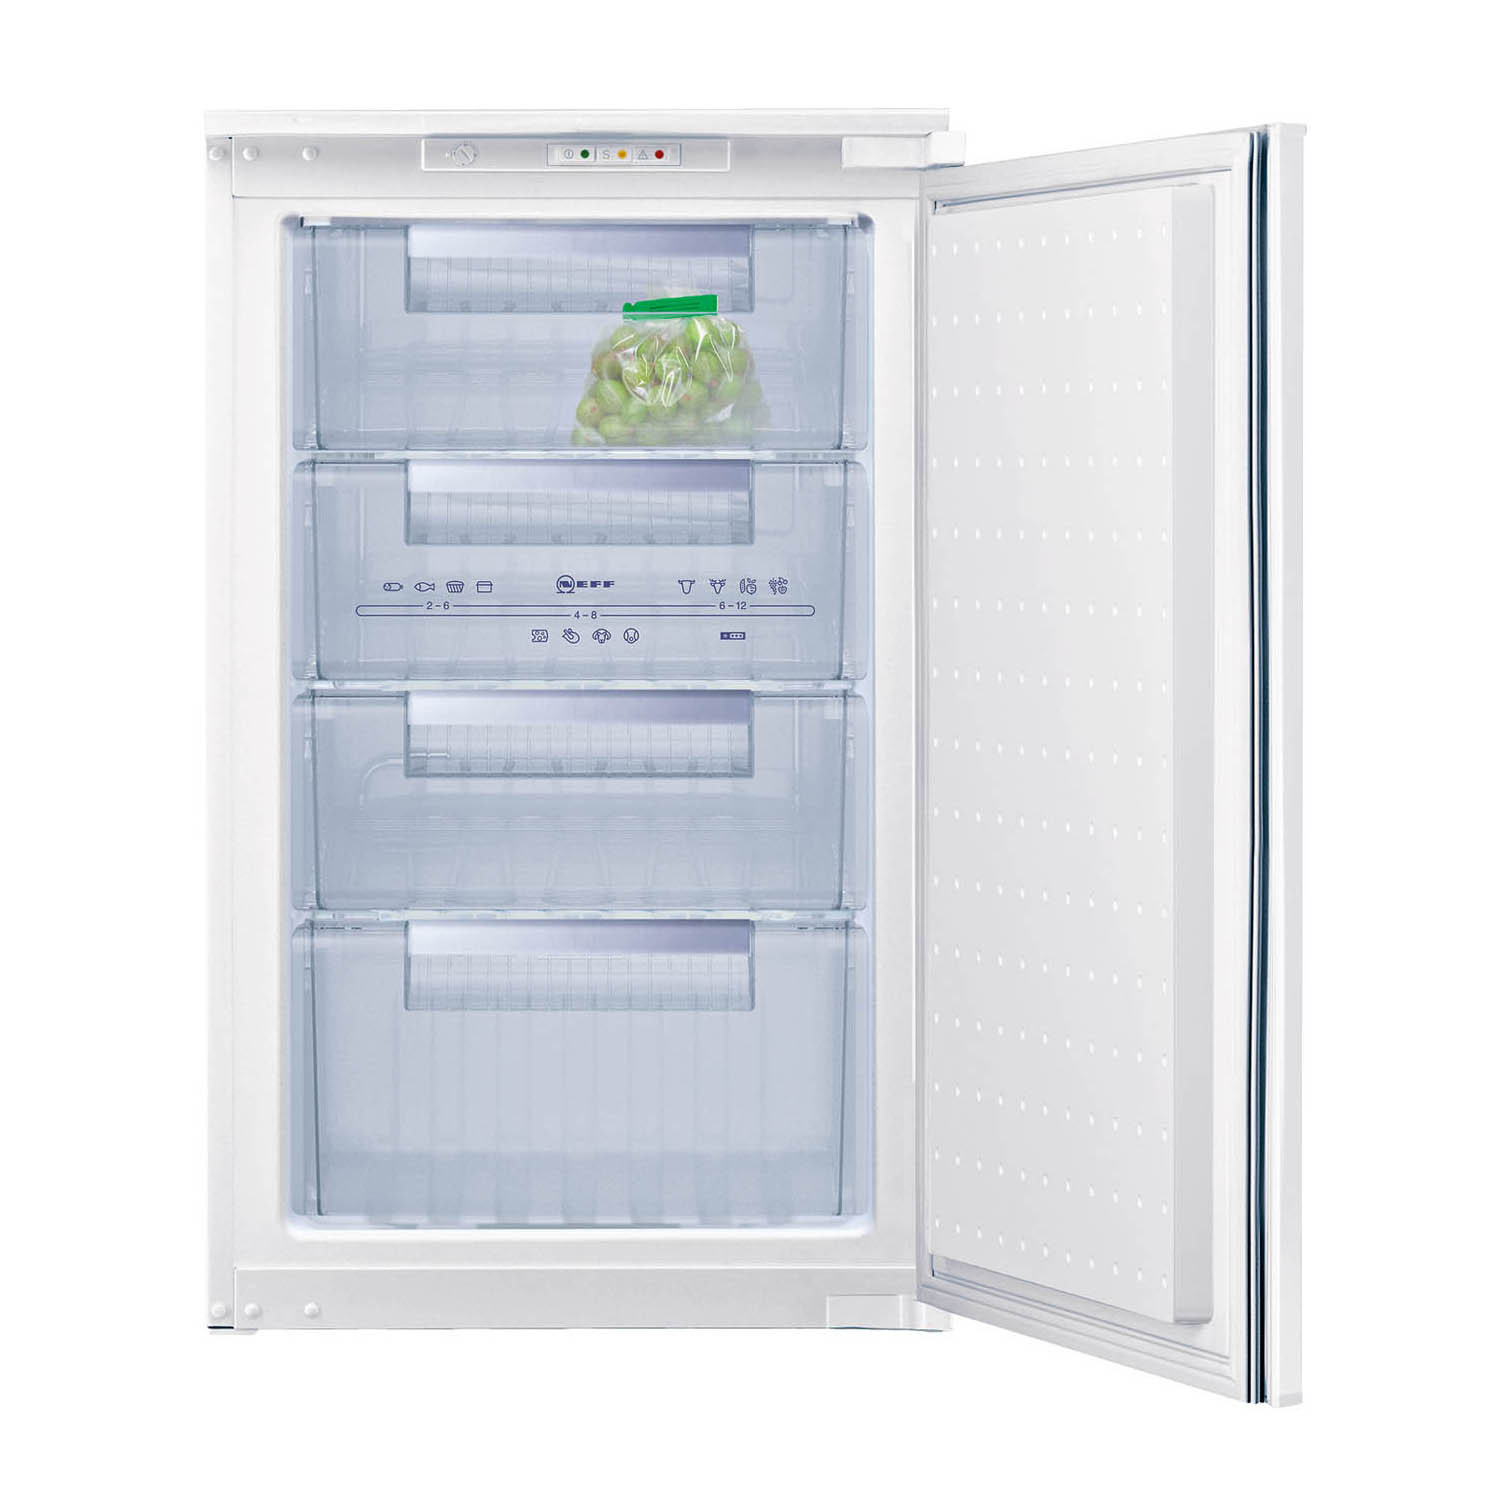 Neff N50 Built-In Fully Integrated 87cm Freezer G1524X7GB